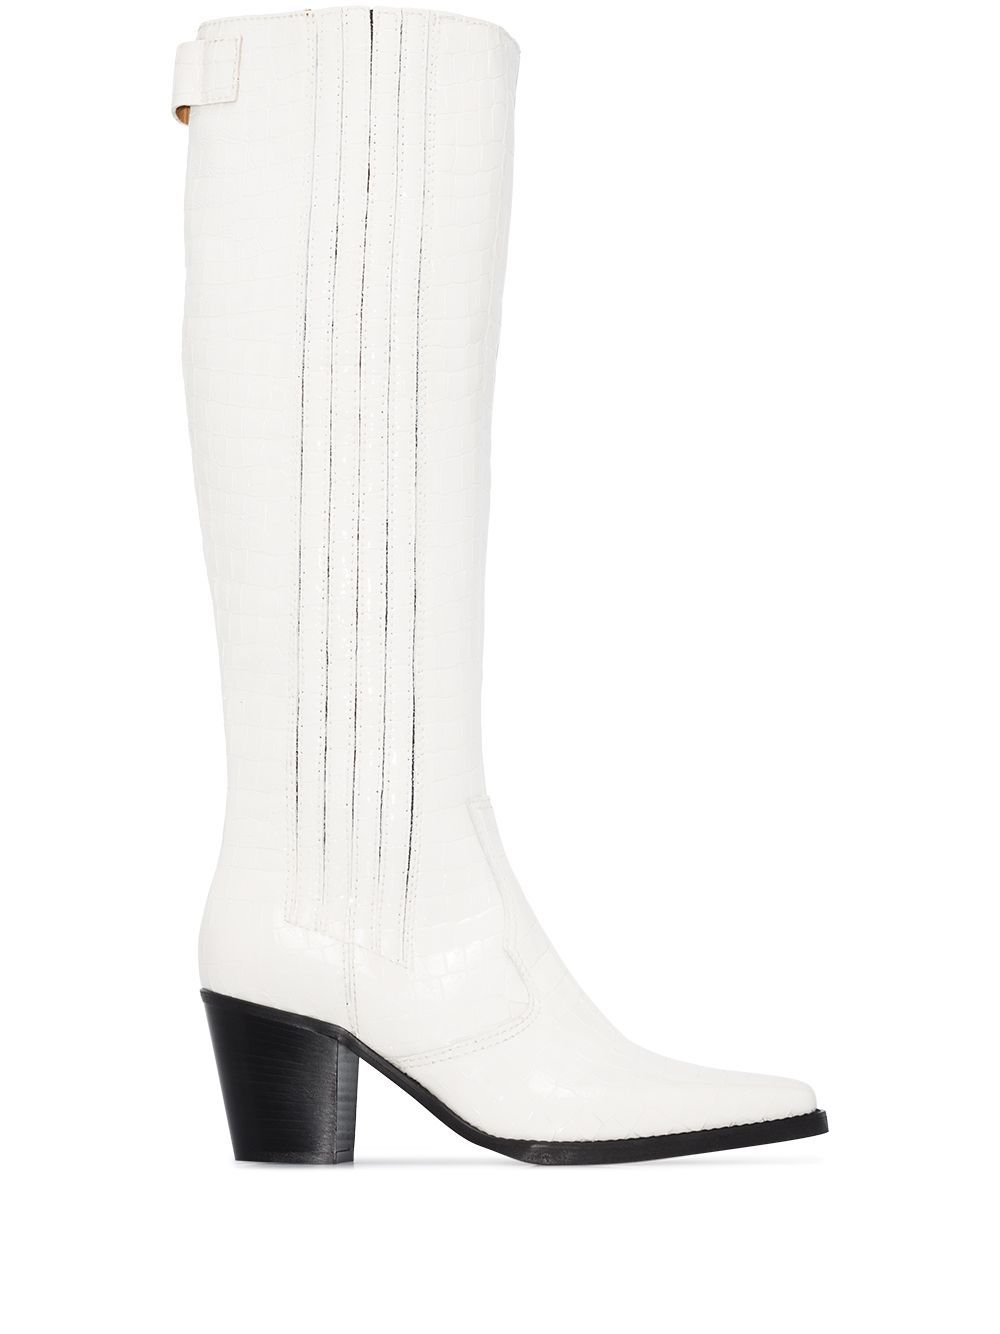 Best white boots – How to wear white boots